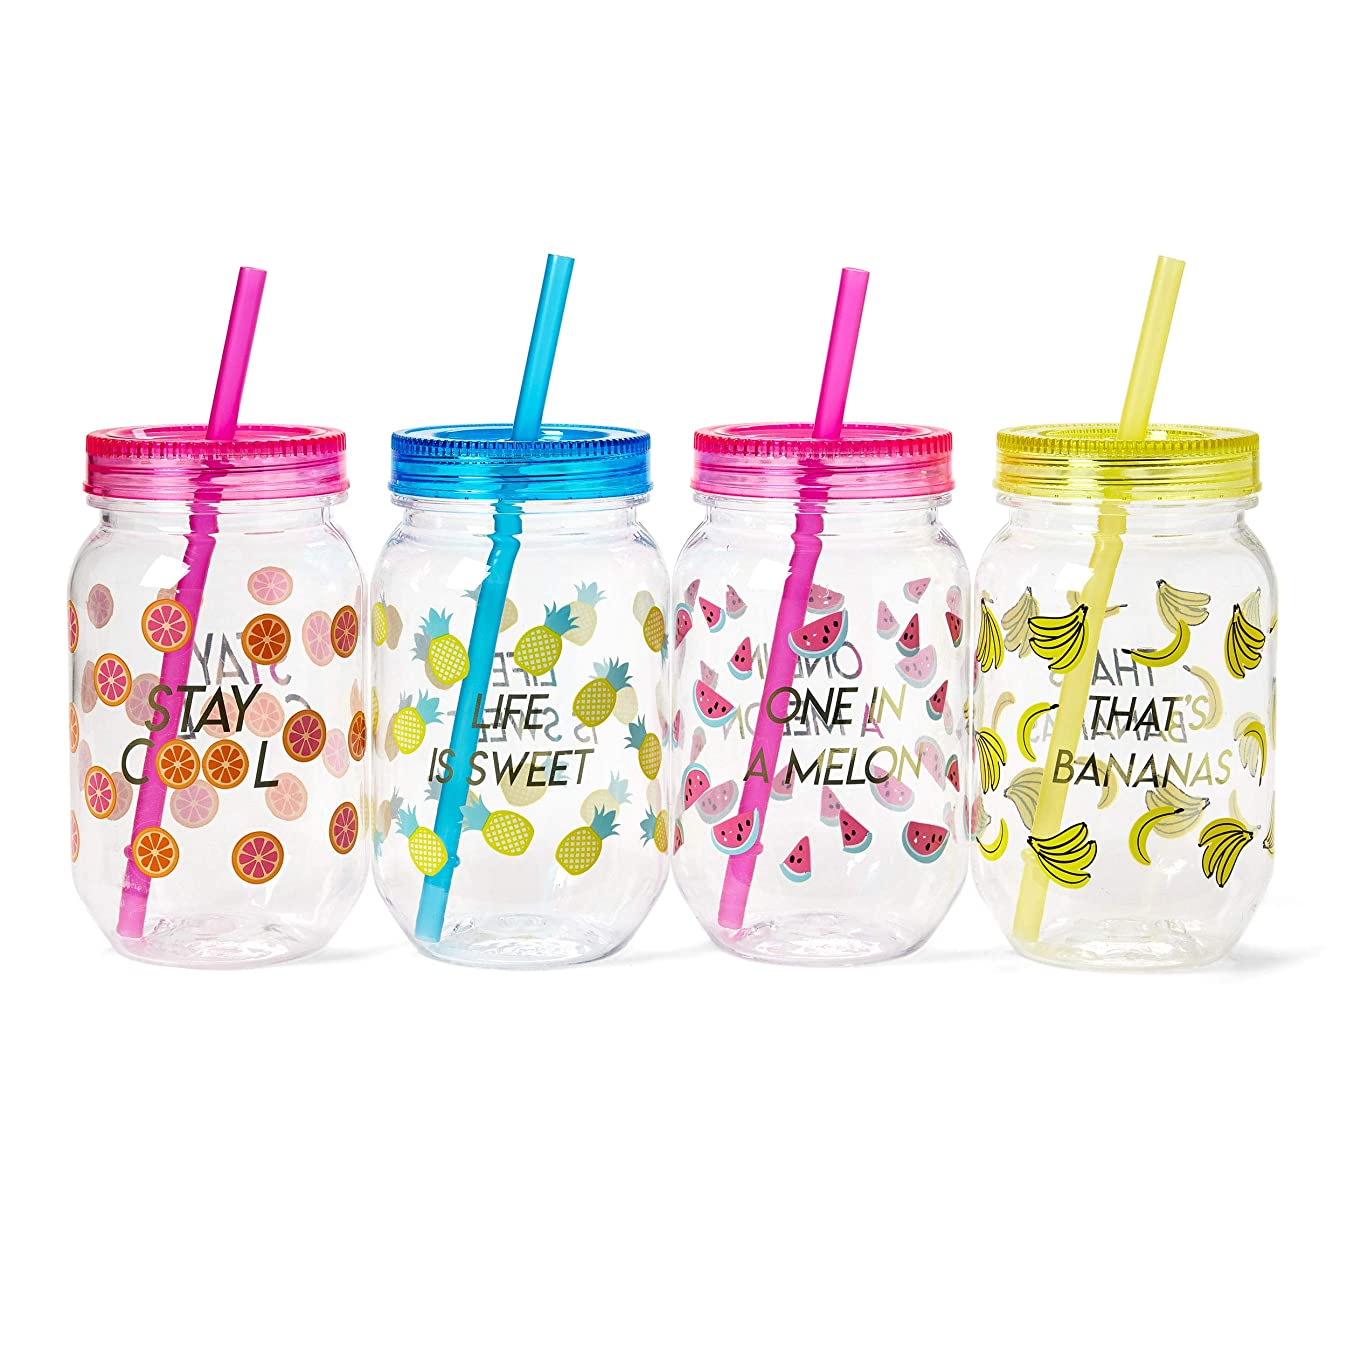 Tri-Coastal Design Fun Mason Jar Plastic Cups: Large Break Resistant, BPA Free To-Go Mugs with Lids and Handles - Perfect as Party Cups, Kids Travel Cups, Wedding Party Cups - Set of 4